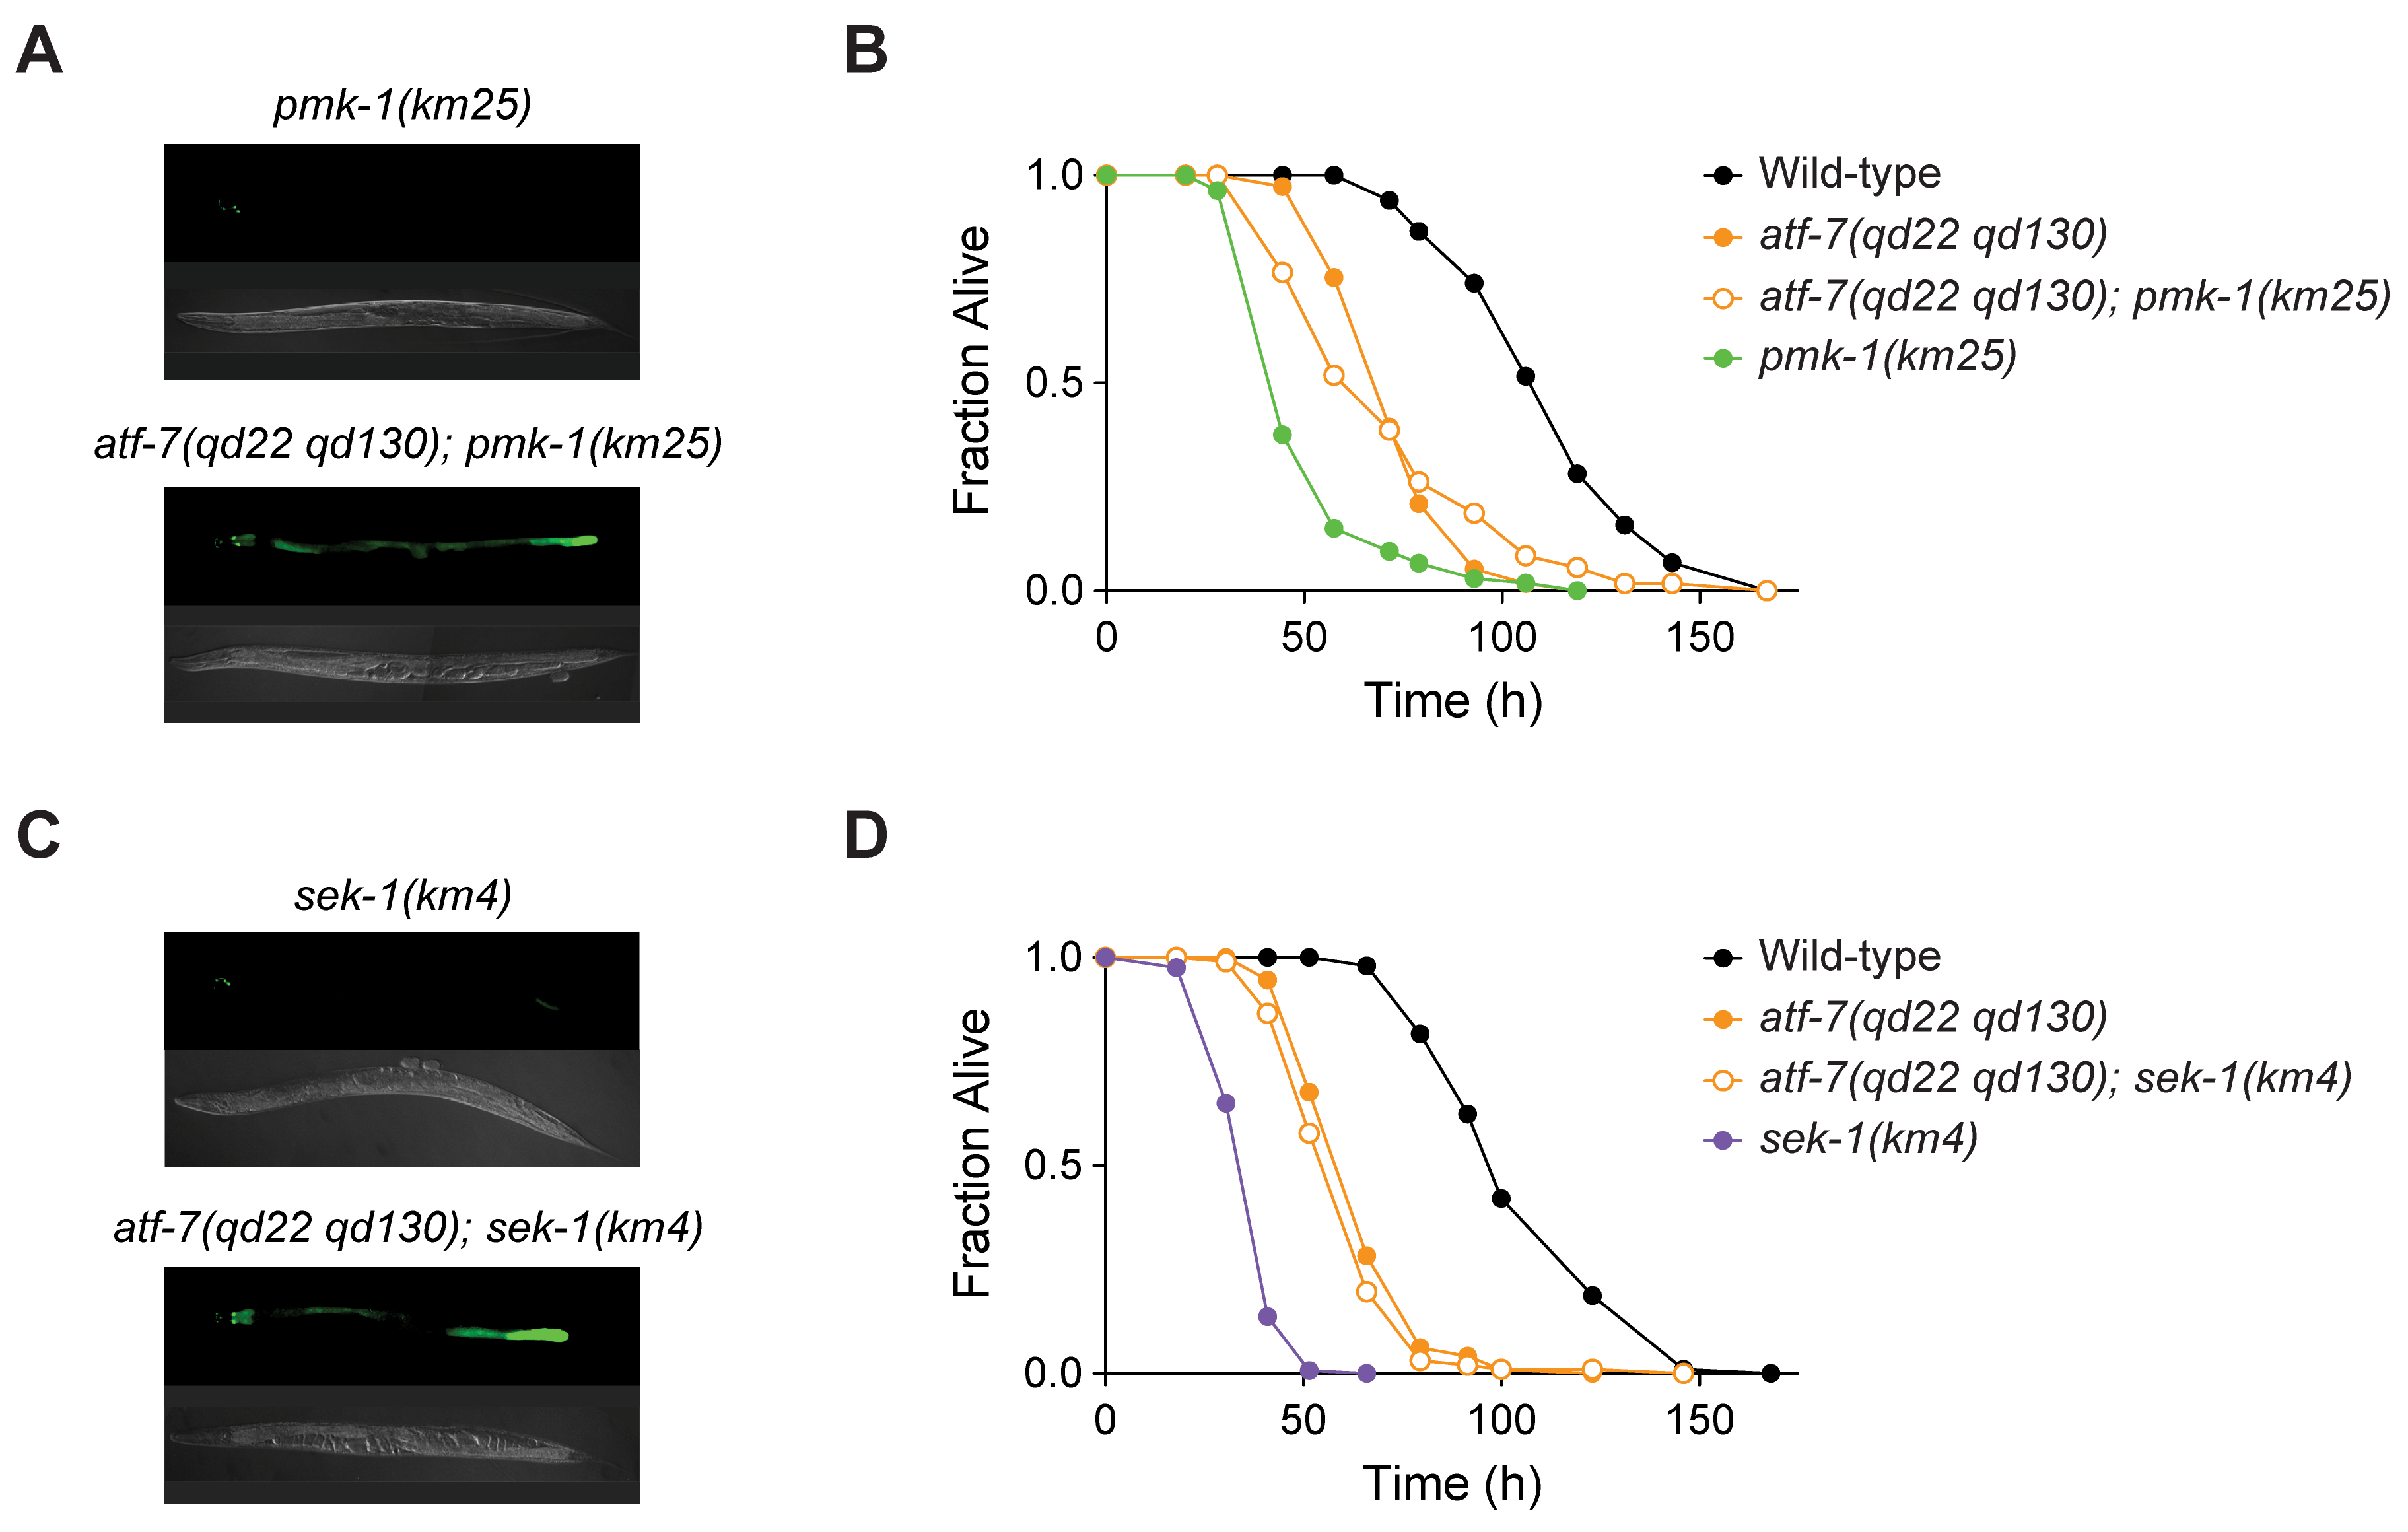 The loss-of-function <i>atf-7(qd22 qd130)</i> mutation suppresses the immunodeficient phenotype caused by deficient signaling in the PMK-1 pathway.